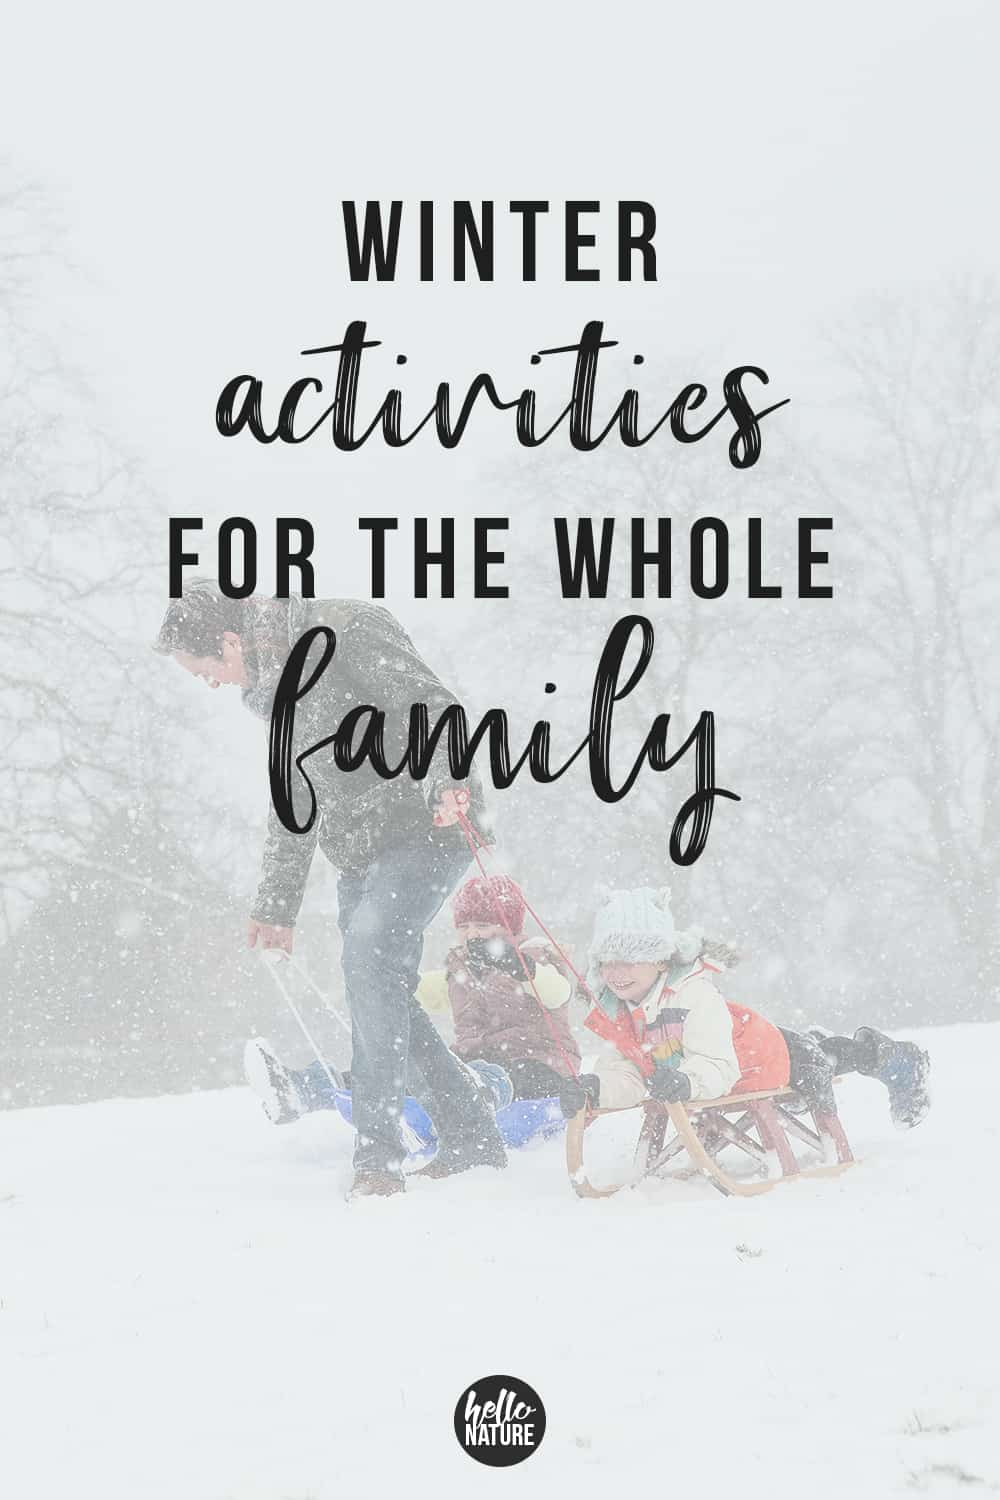 Looking for winter activities for toddlers, adults and everything in between? Get outdoor inspiration with these 15 winter activities for the whole family.